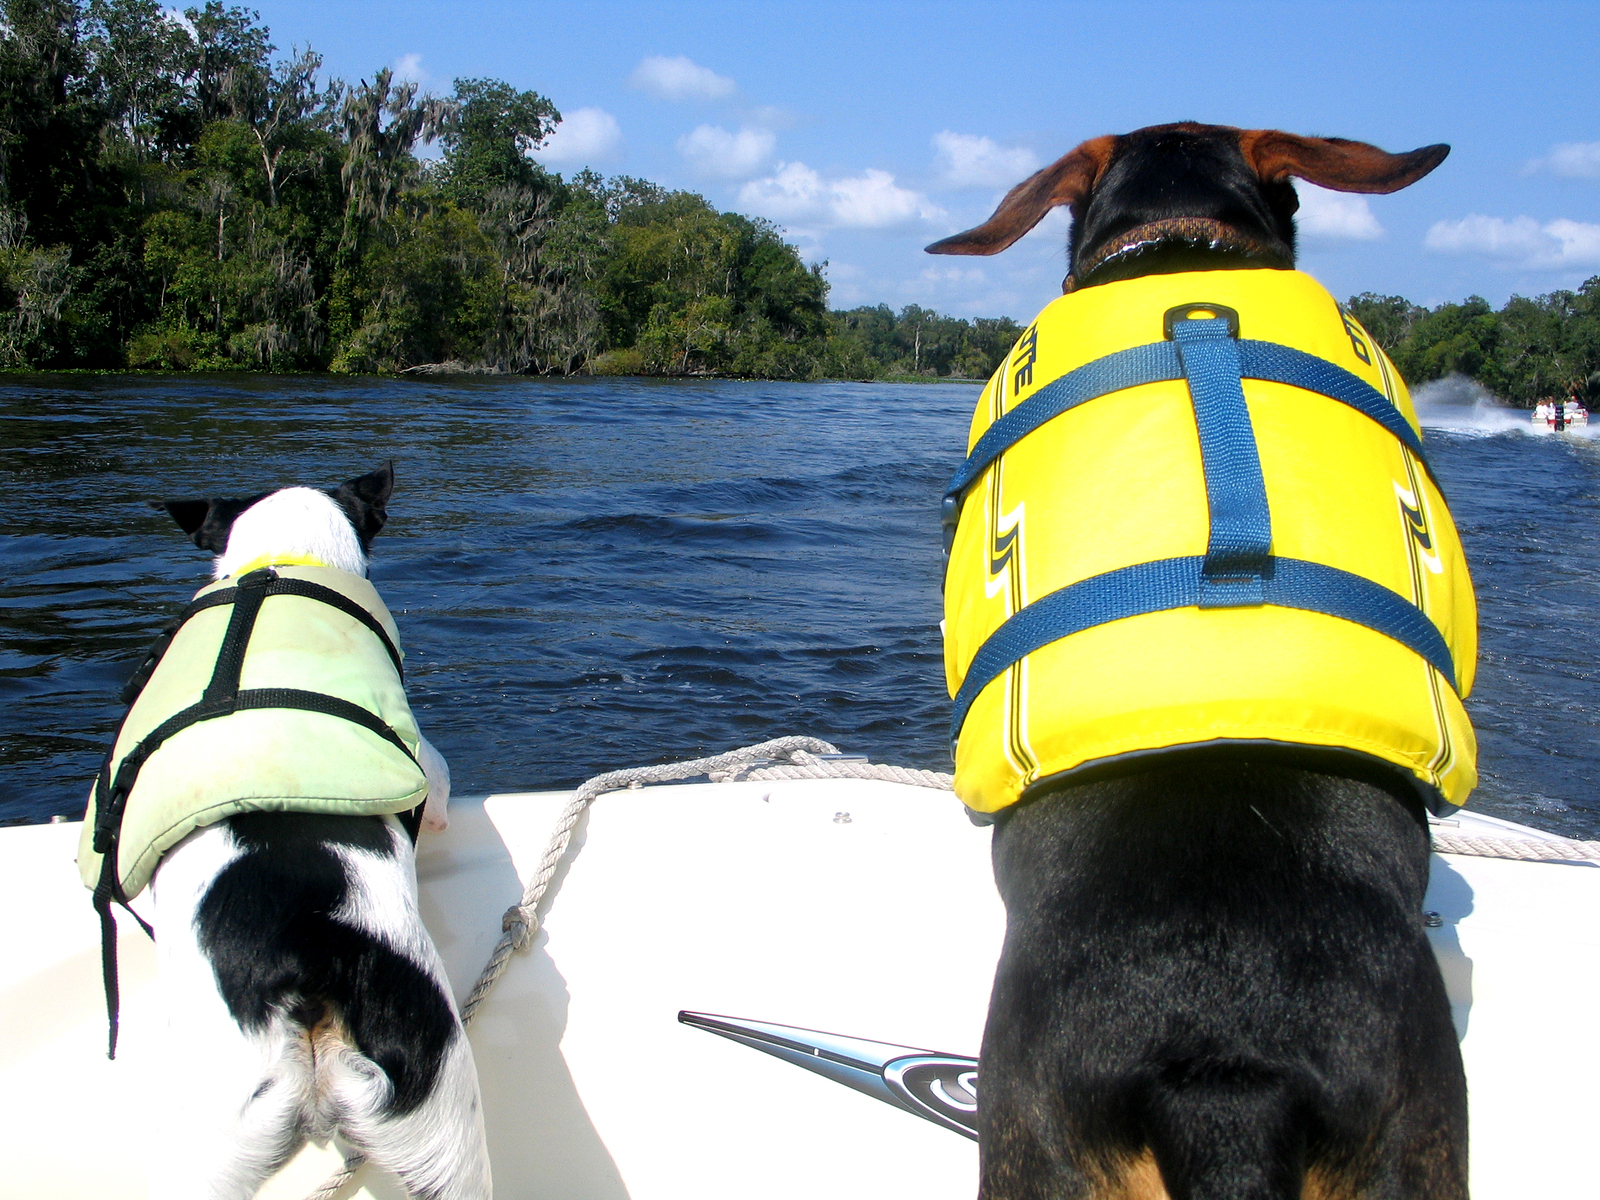 dogs on a boat with life vests in the front of a boat in the wind having fun